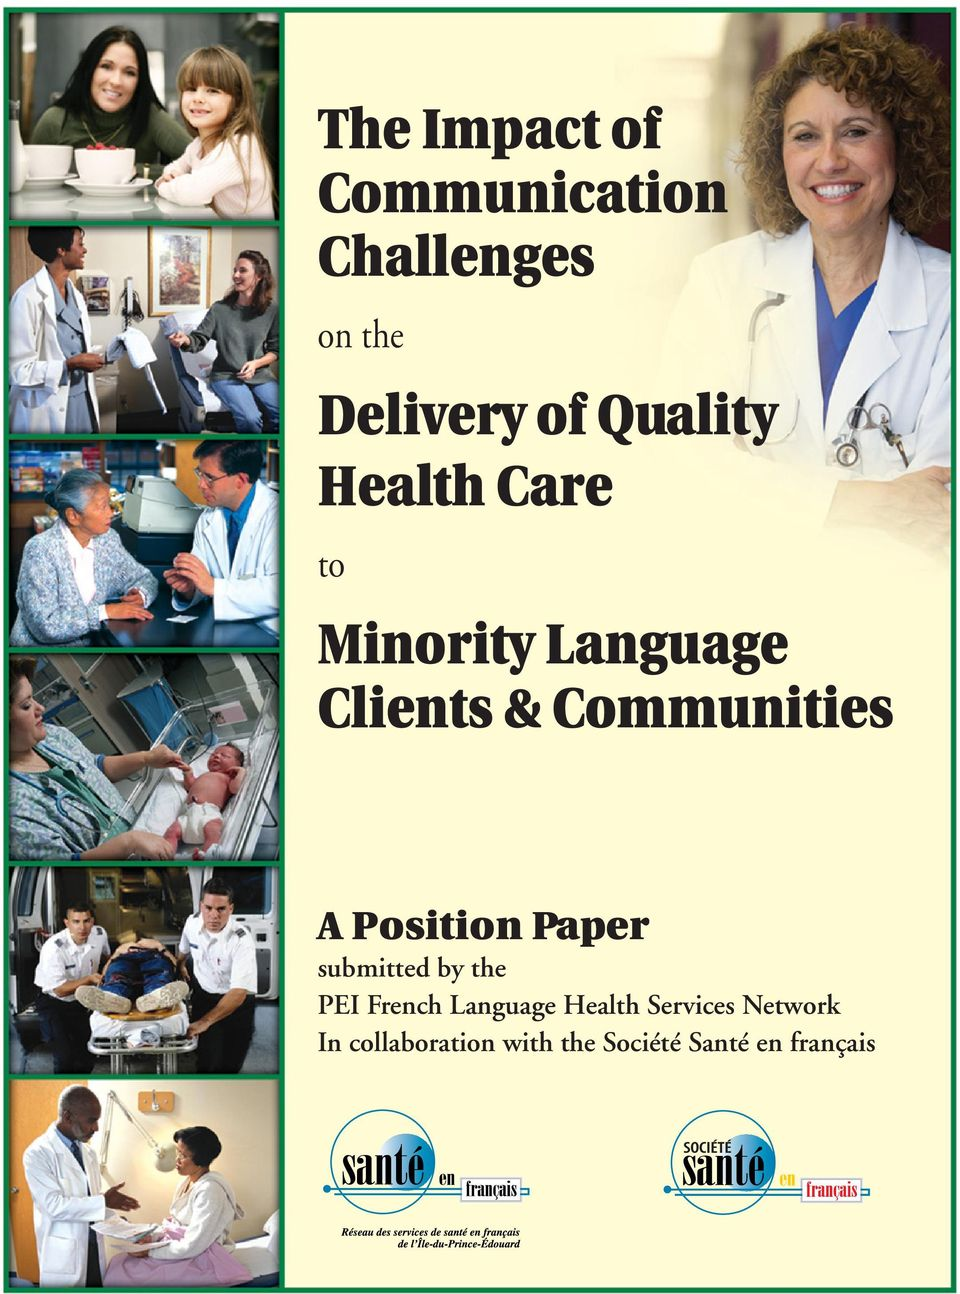 A Position Paper submitted by the PEI French Language Health